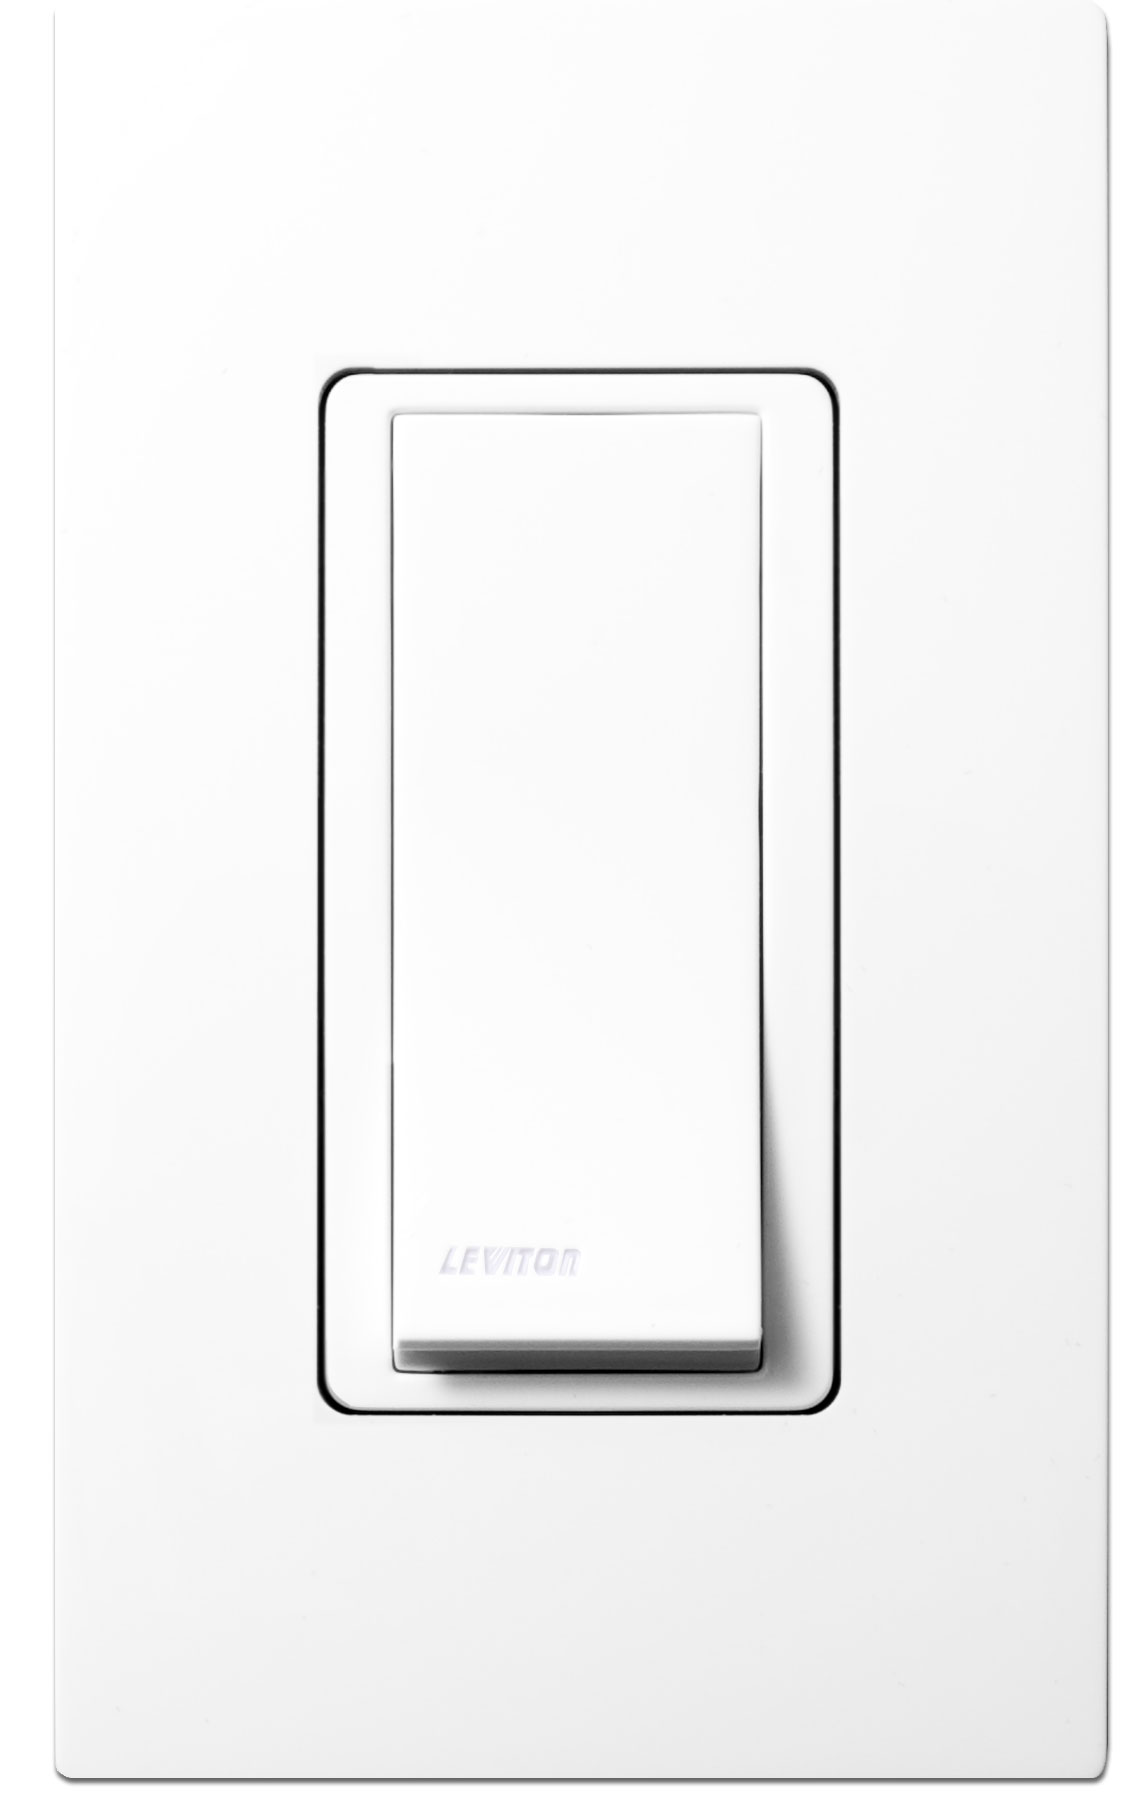 Leviton WSS0S-P0W Wireless Self-Powered Remote Switch, White - Wall ...